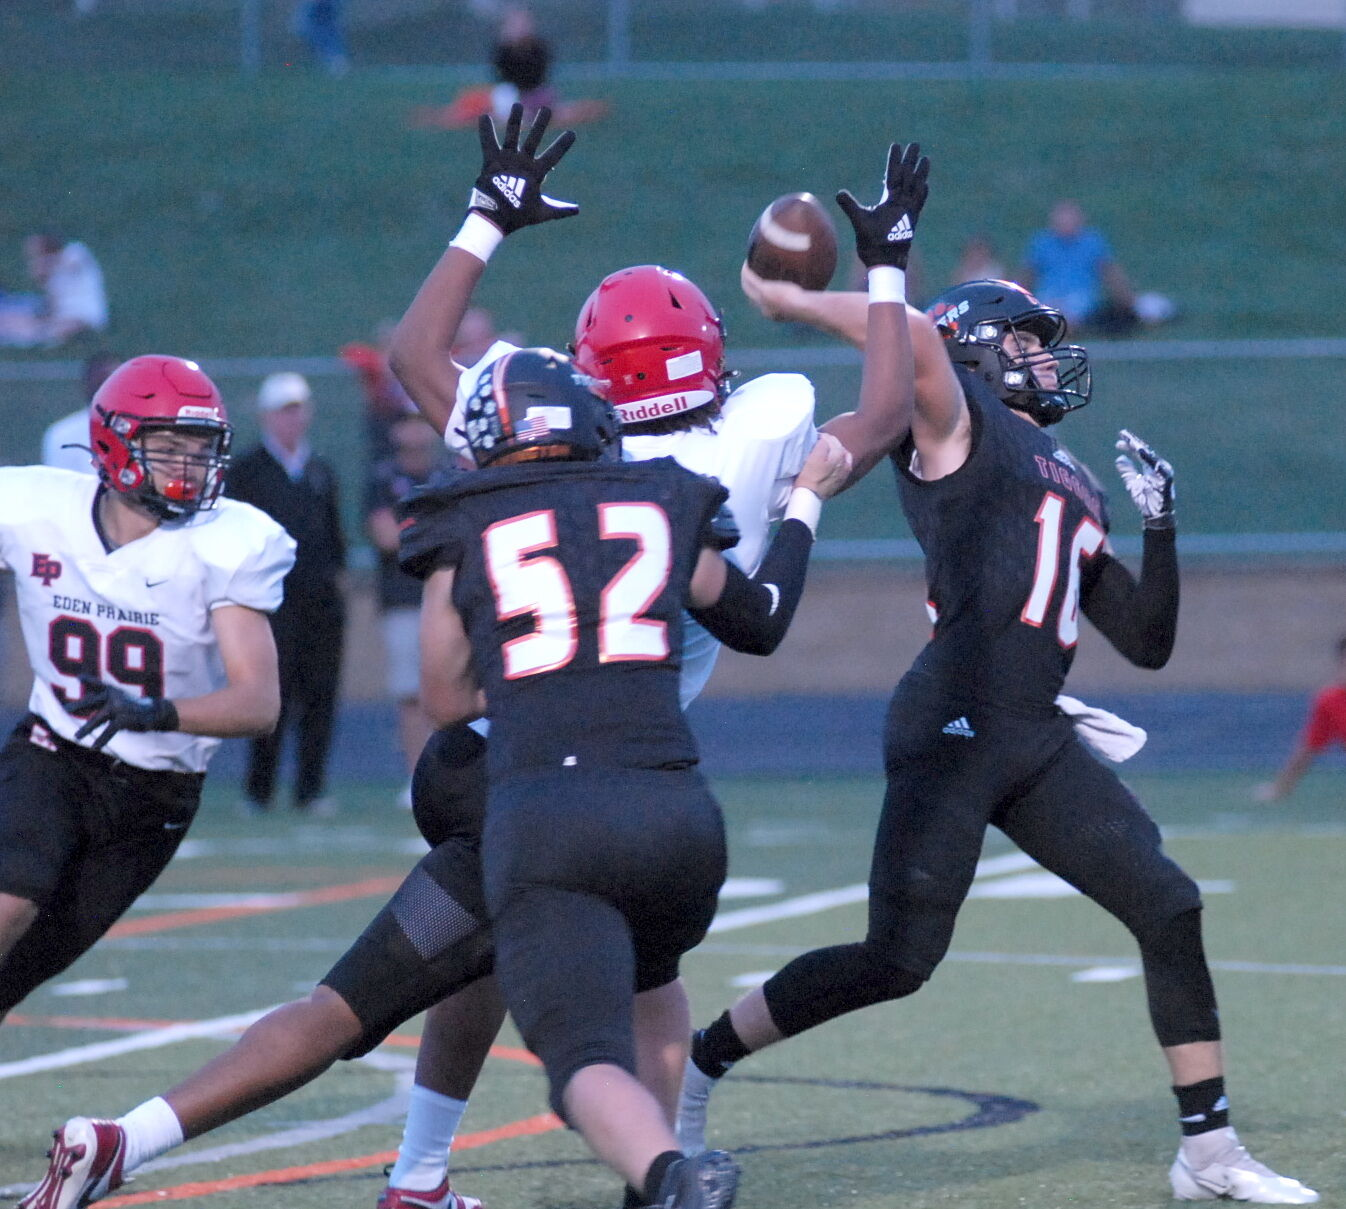 Week 2 football: Cougars grind out a victory over North